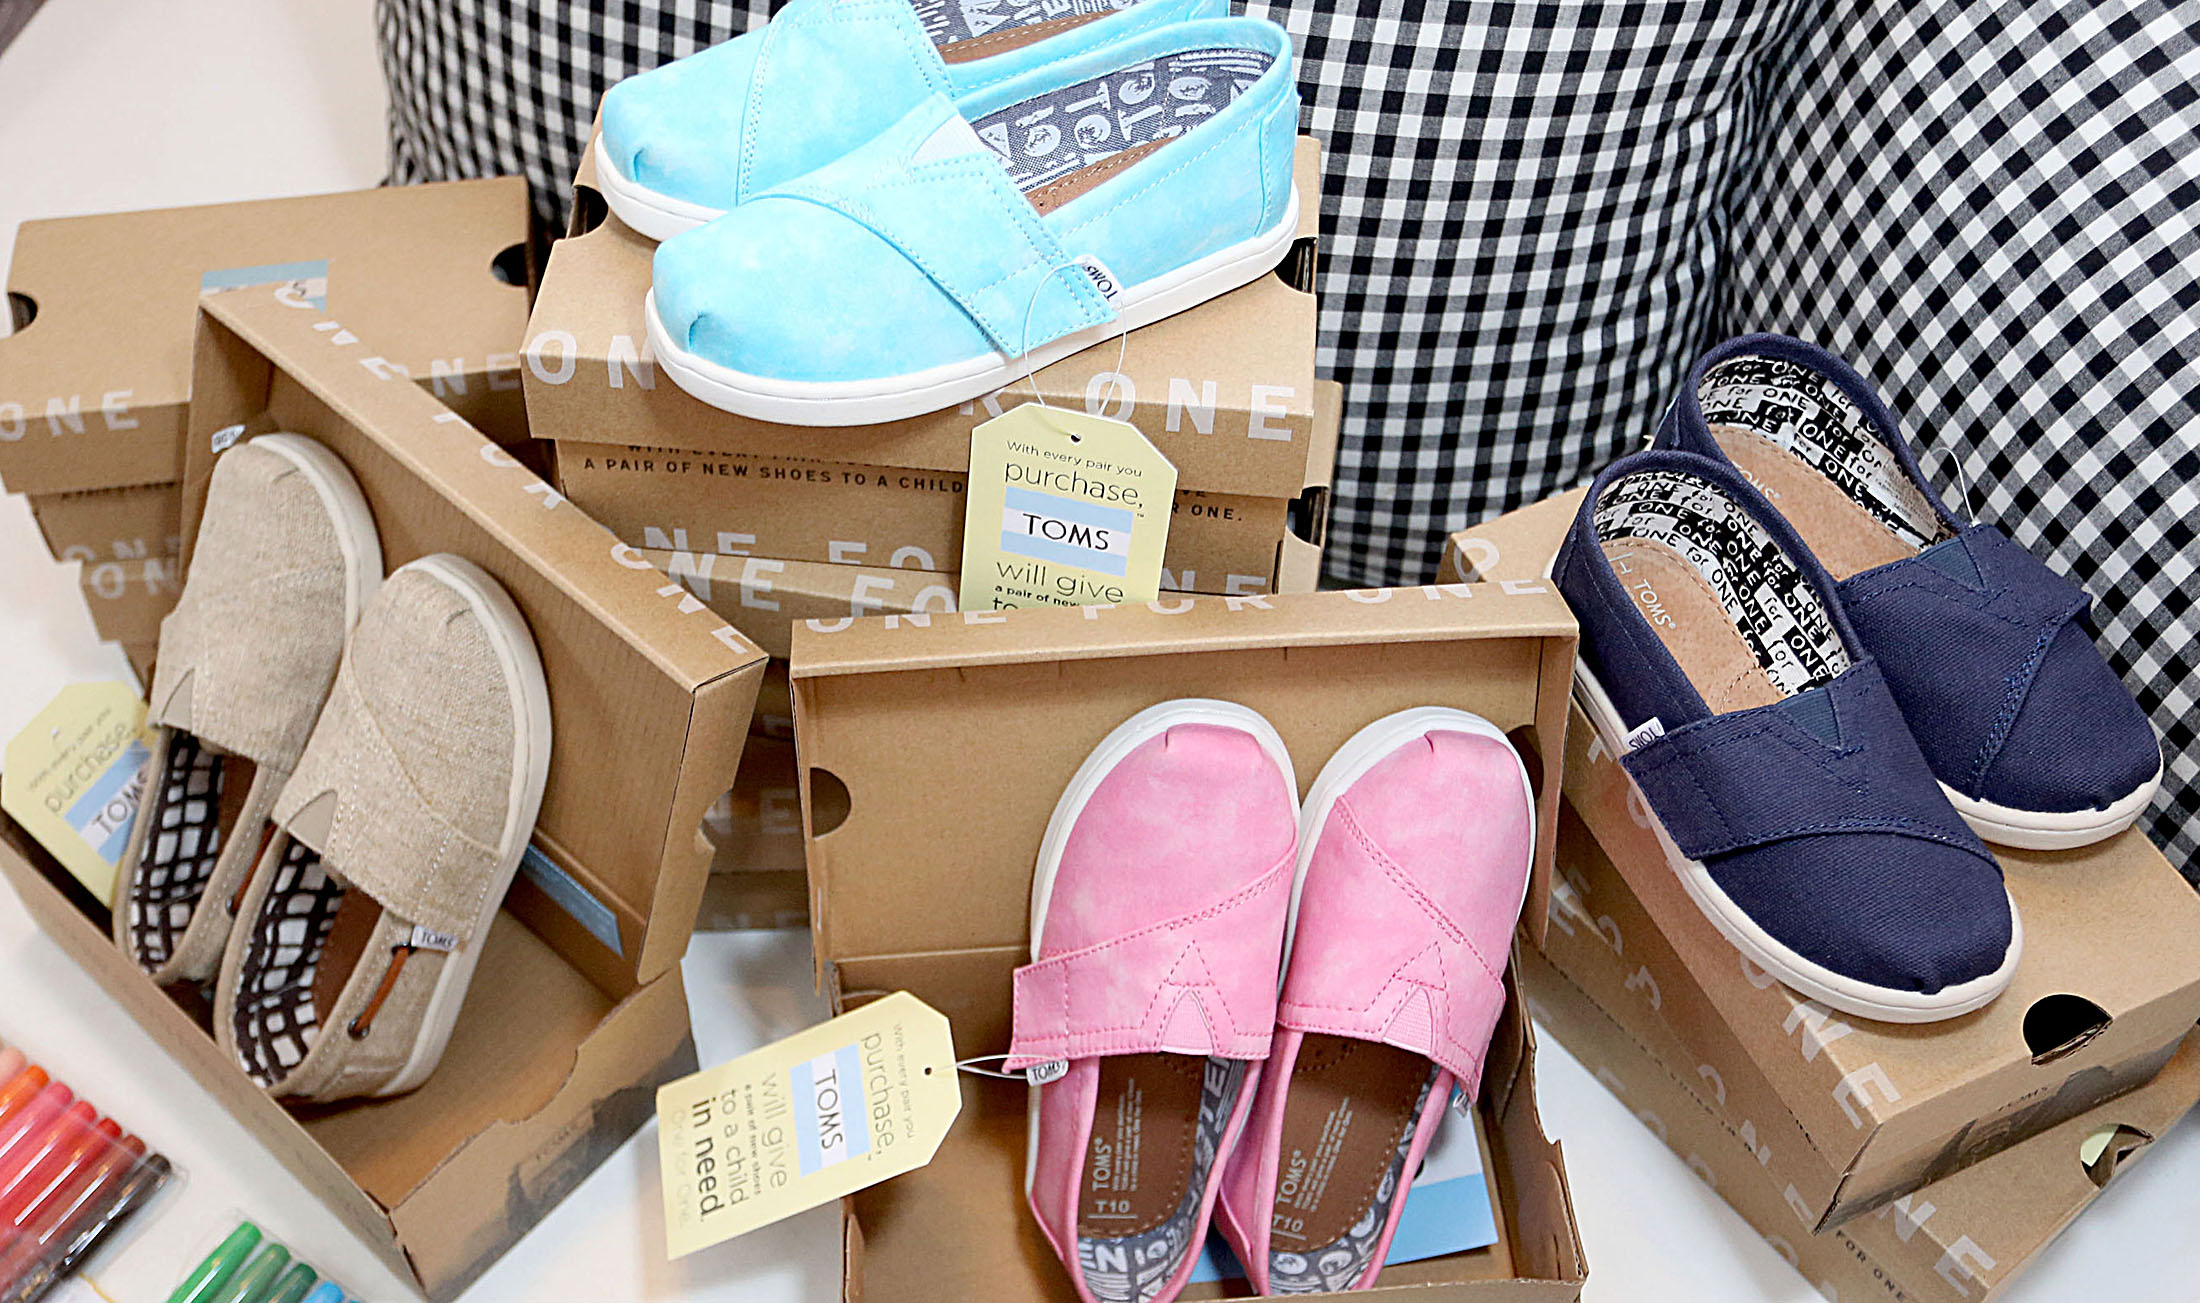 1aceb82b2c4 Even Wall Street Couldn t Protect Toms Shoes From Retail s Storm - Bloomberg